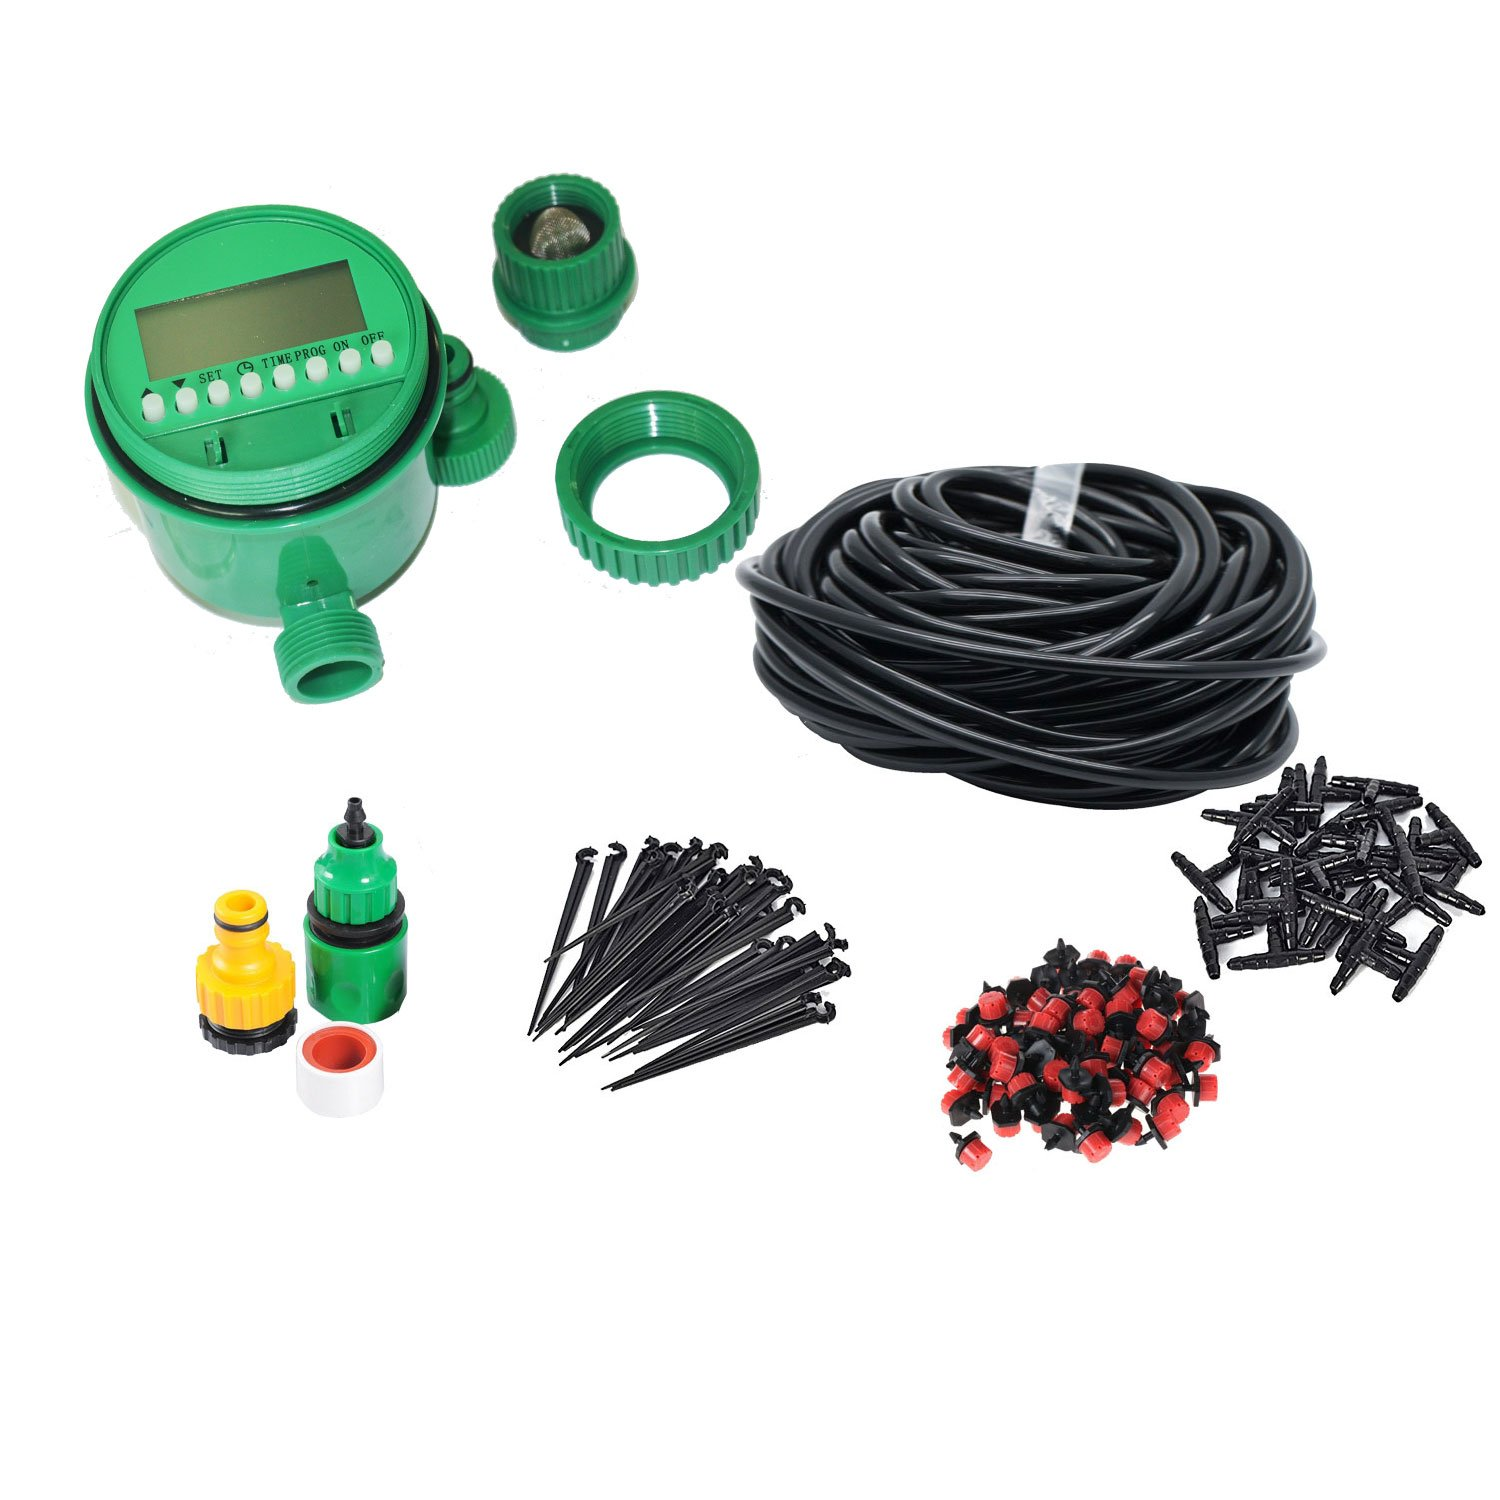 Himifuture 82FT Drip Irrigation Kit Timer Sprinklers System Garden Included Irrigation Tubing Hose Timer Drippers Various Watering Drip Kits